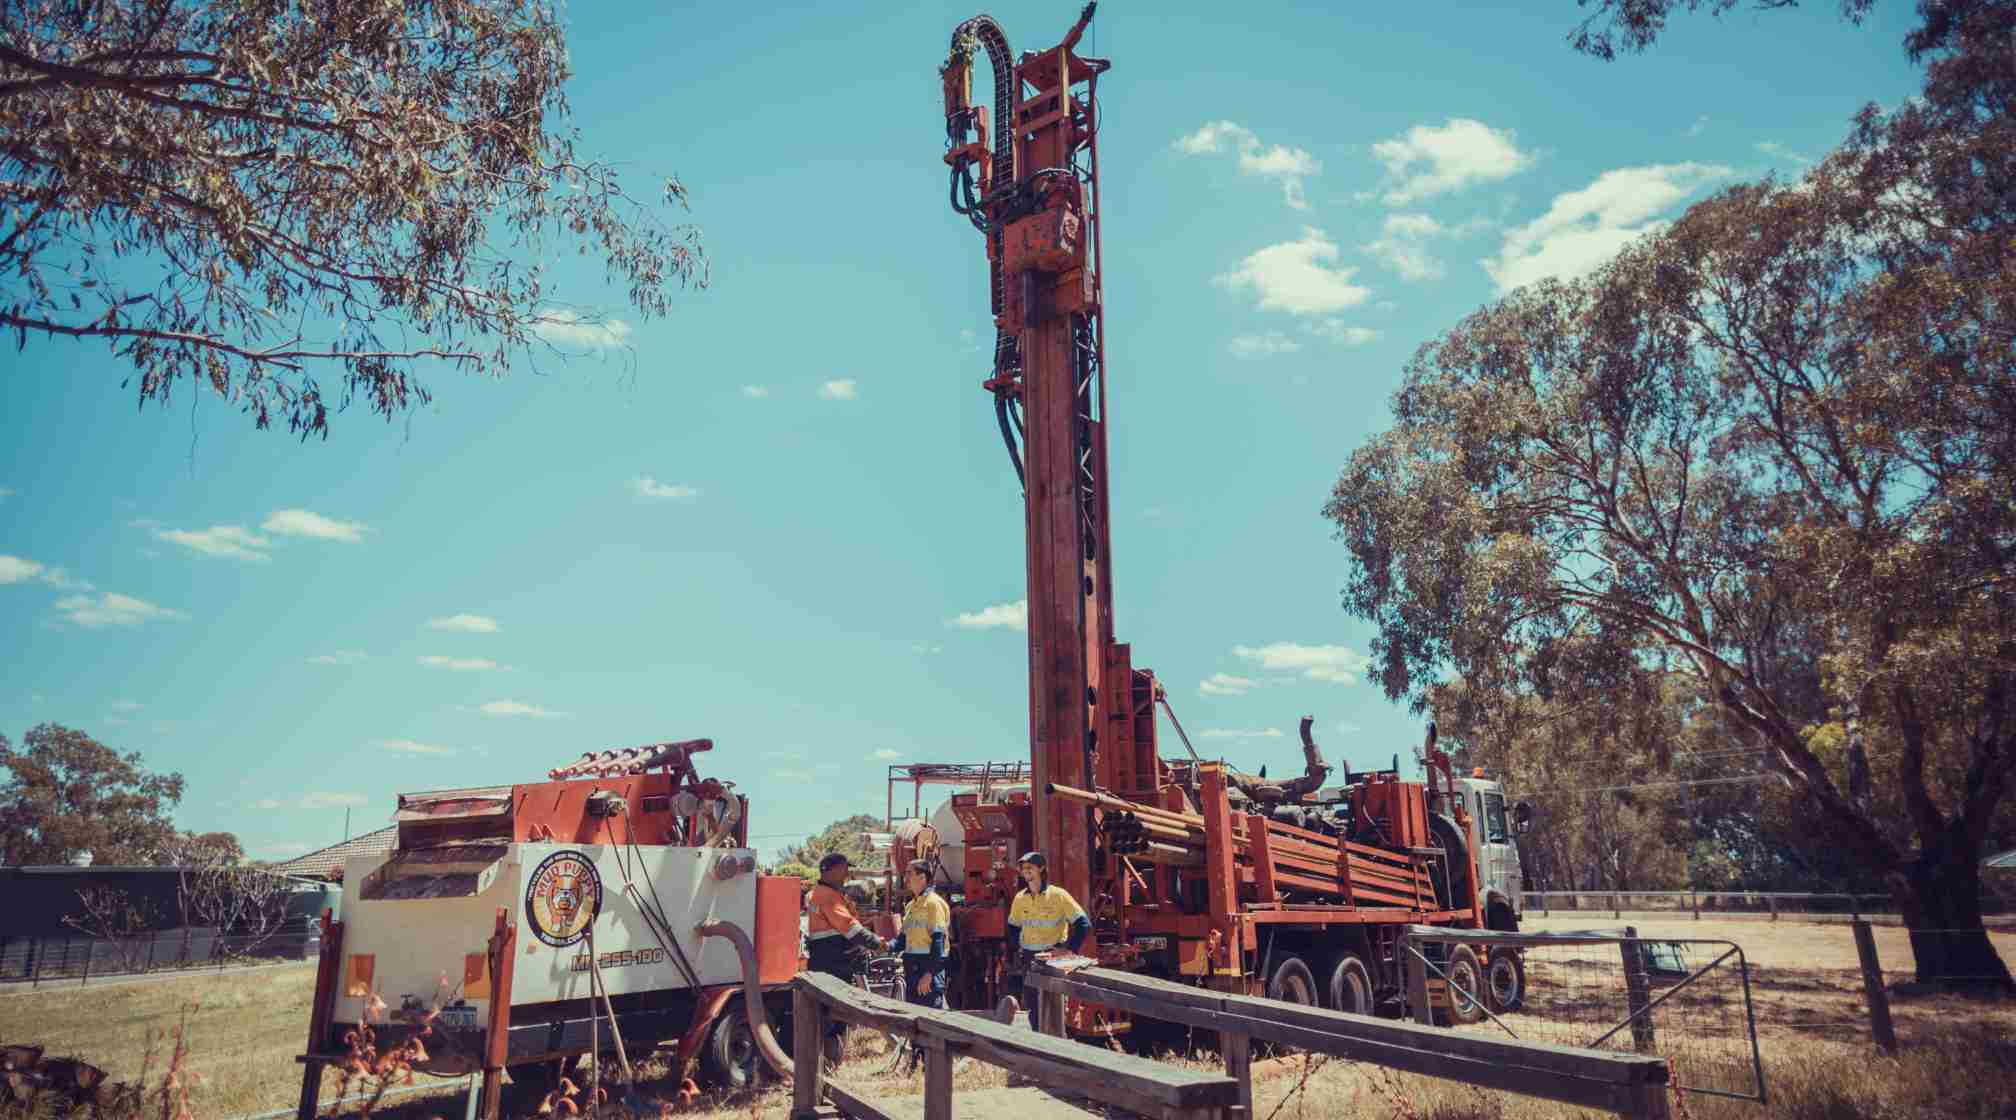 Bore drilling team BD Water based in Perth, Western Australia, City of Swan.